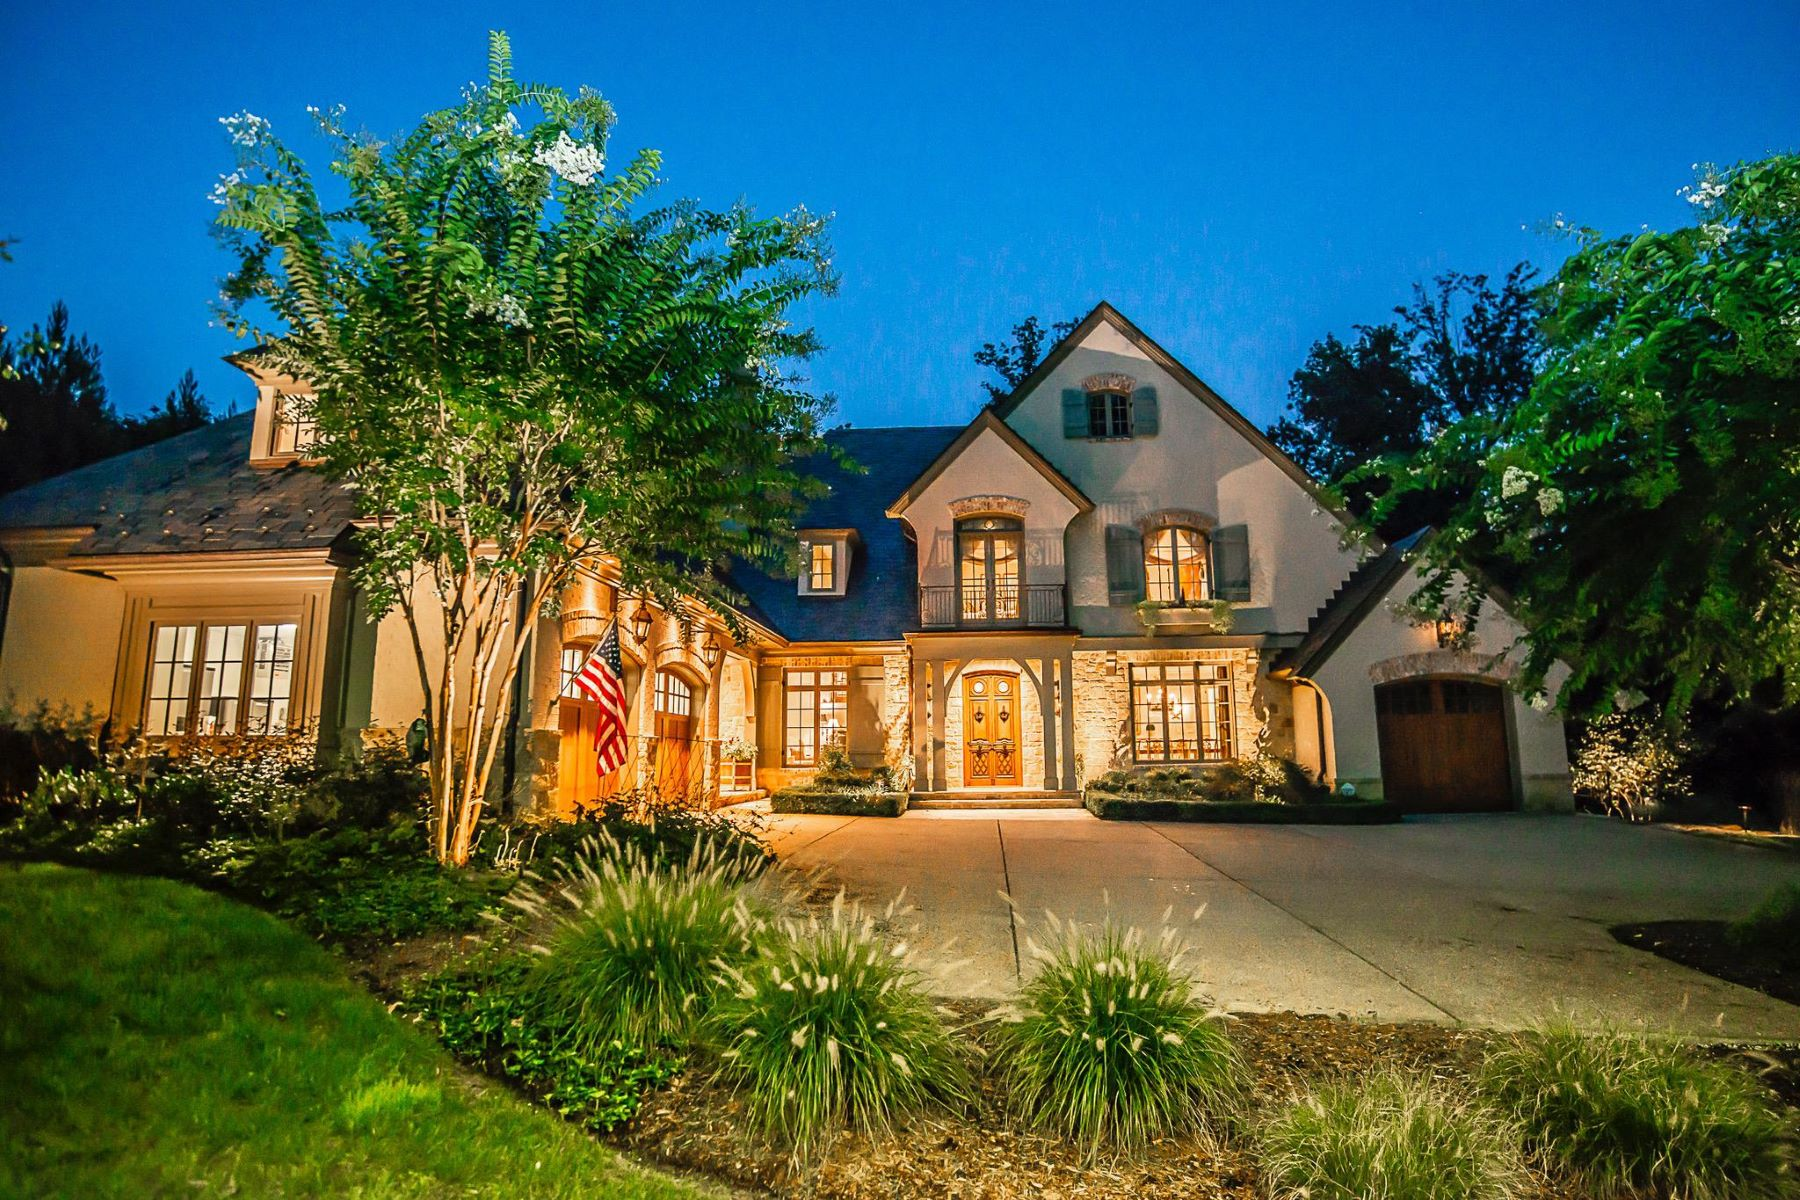 Property for Sale at 6126 Franklin Park Rd McLean, Virginia 22101 United States